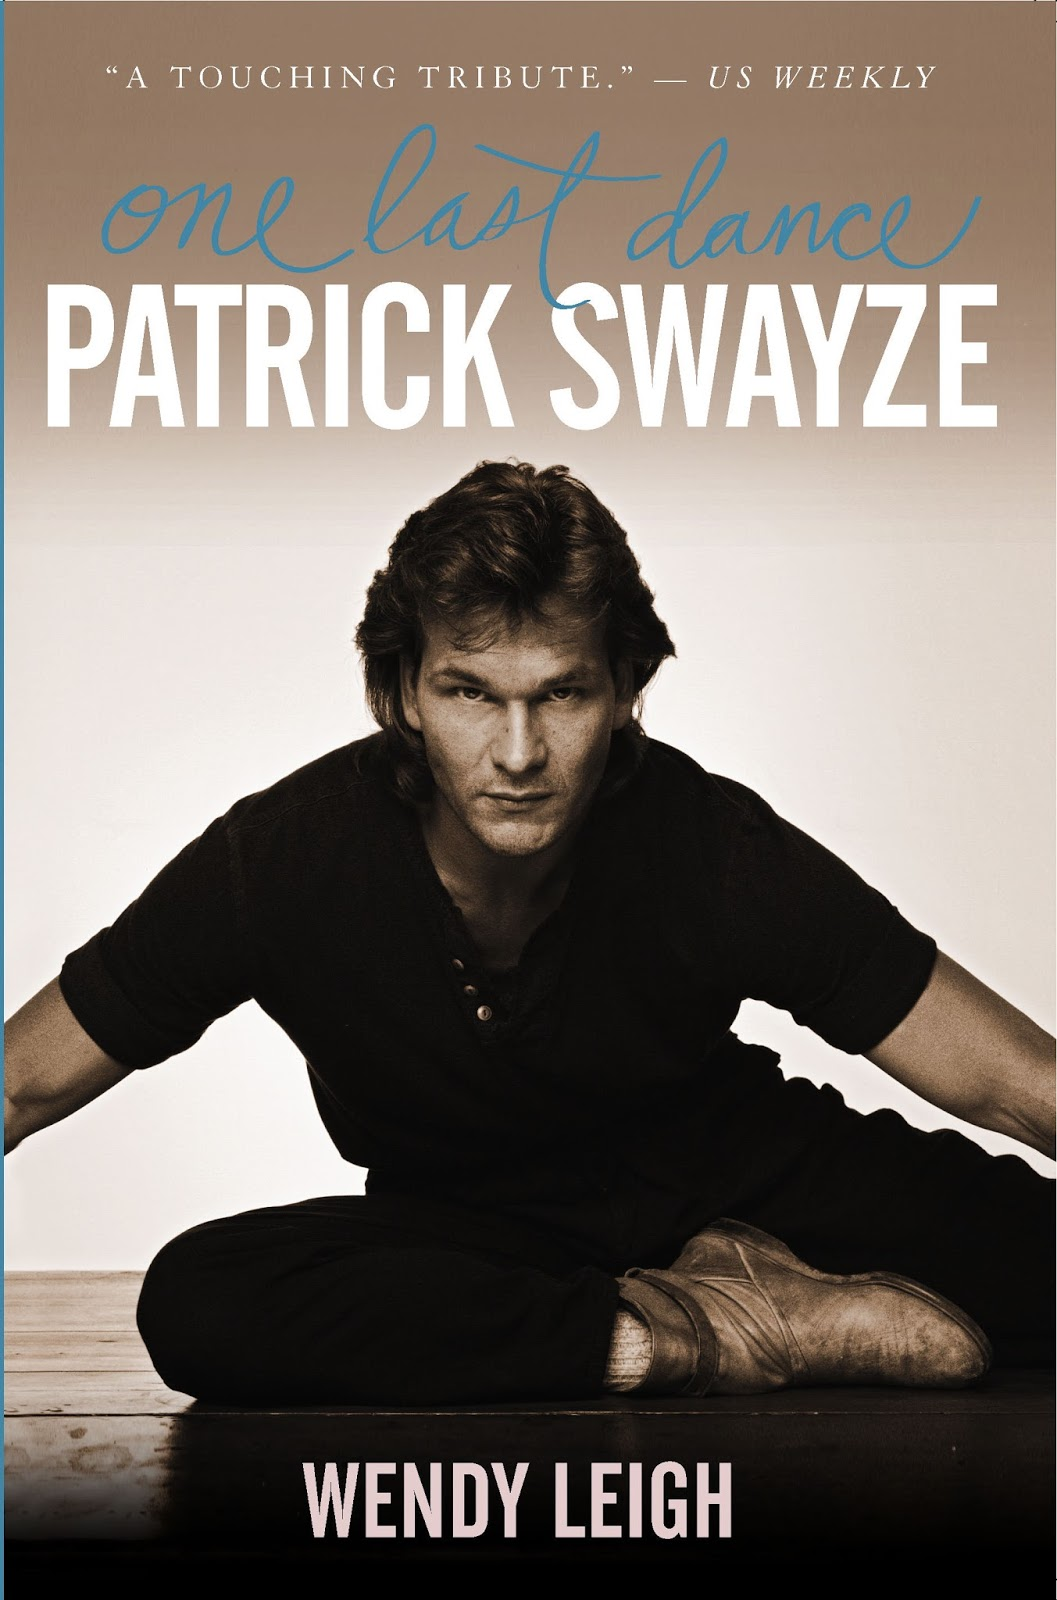 Patrick Swayze. Biography of a multifaceted personality